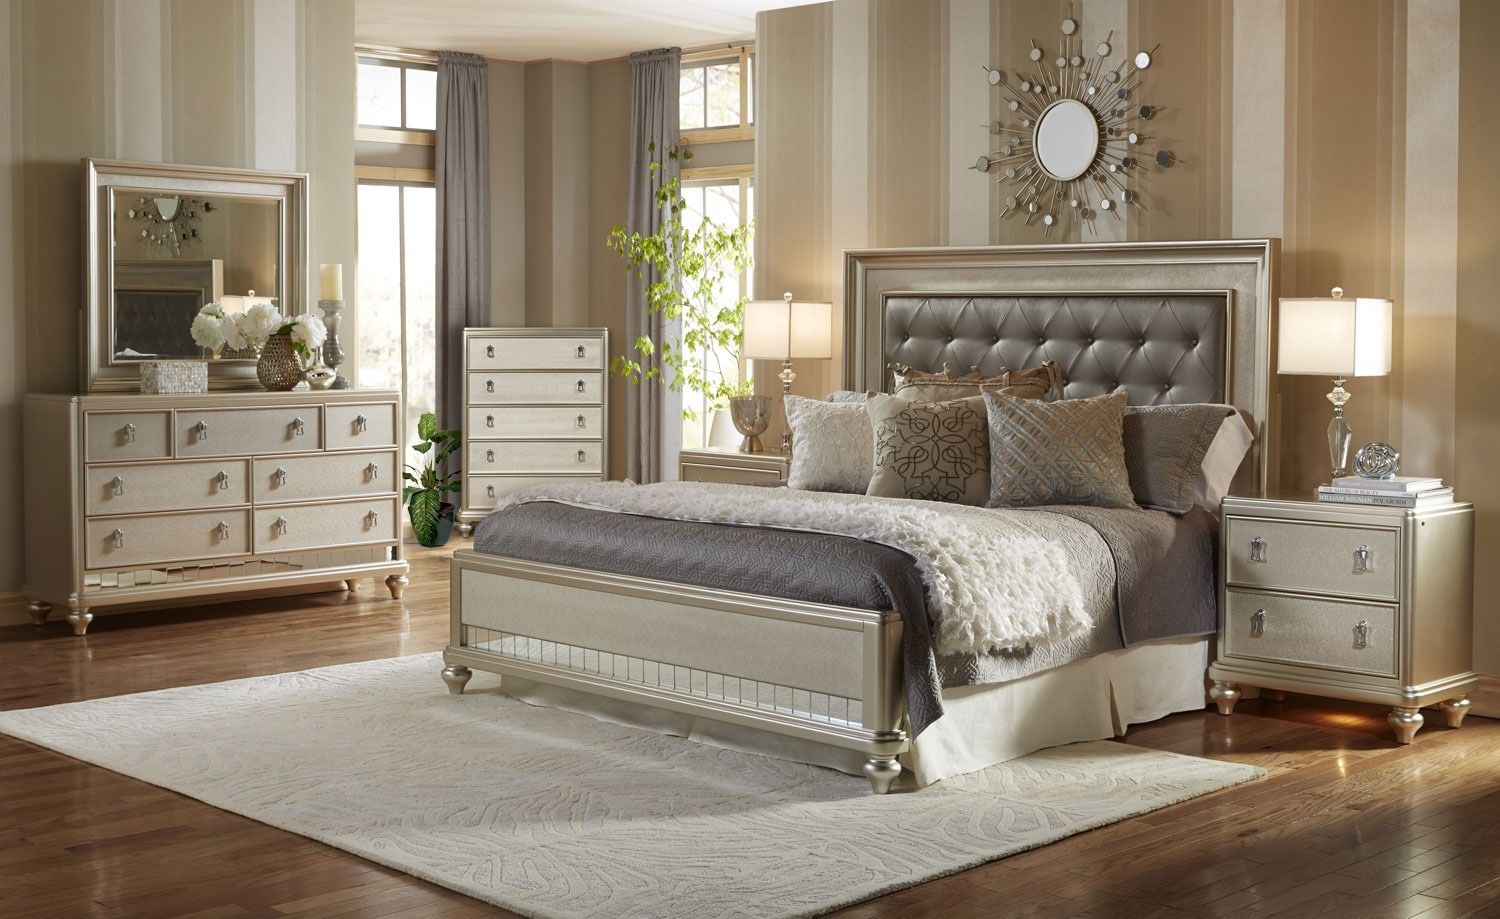 Bedroom Furniture - Diva 7-Piece Queen Bedroom Package